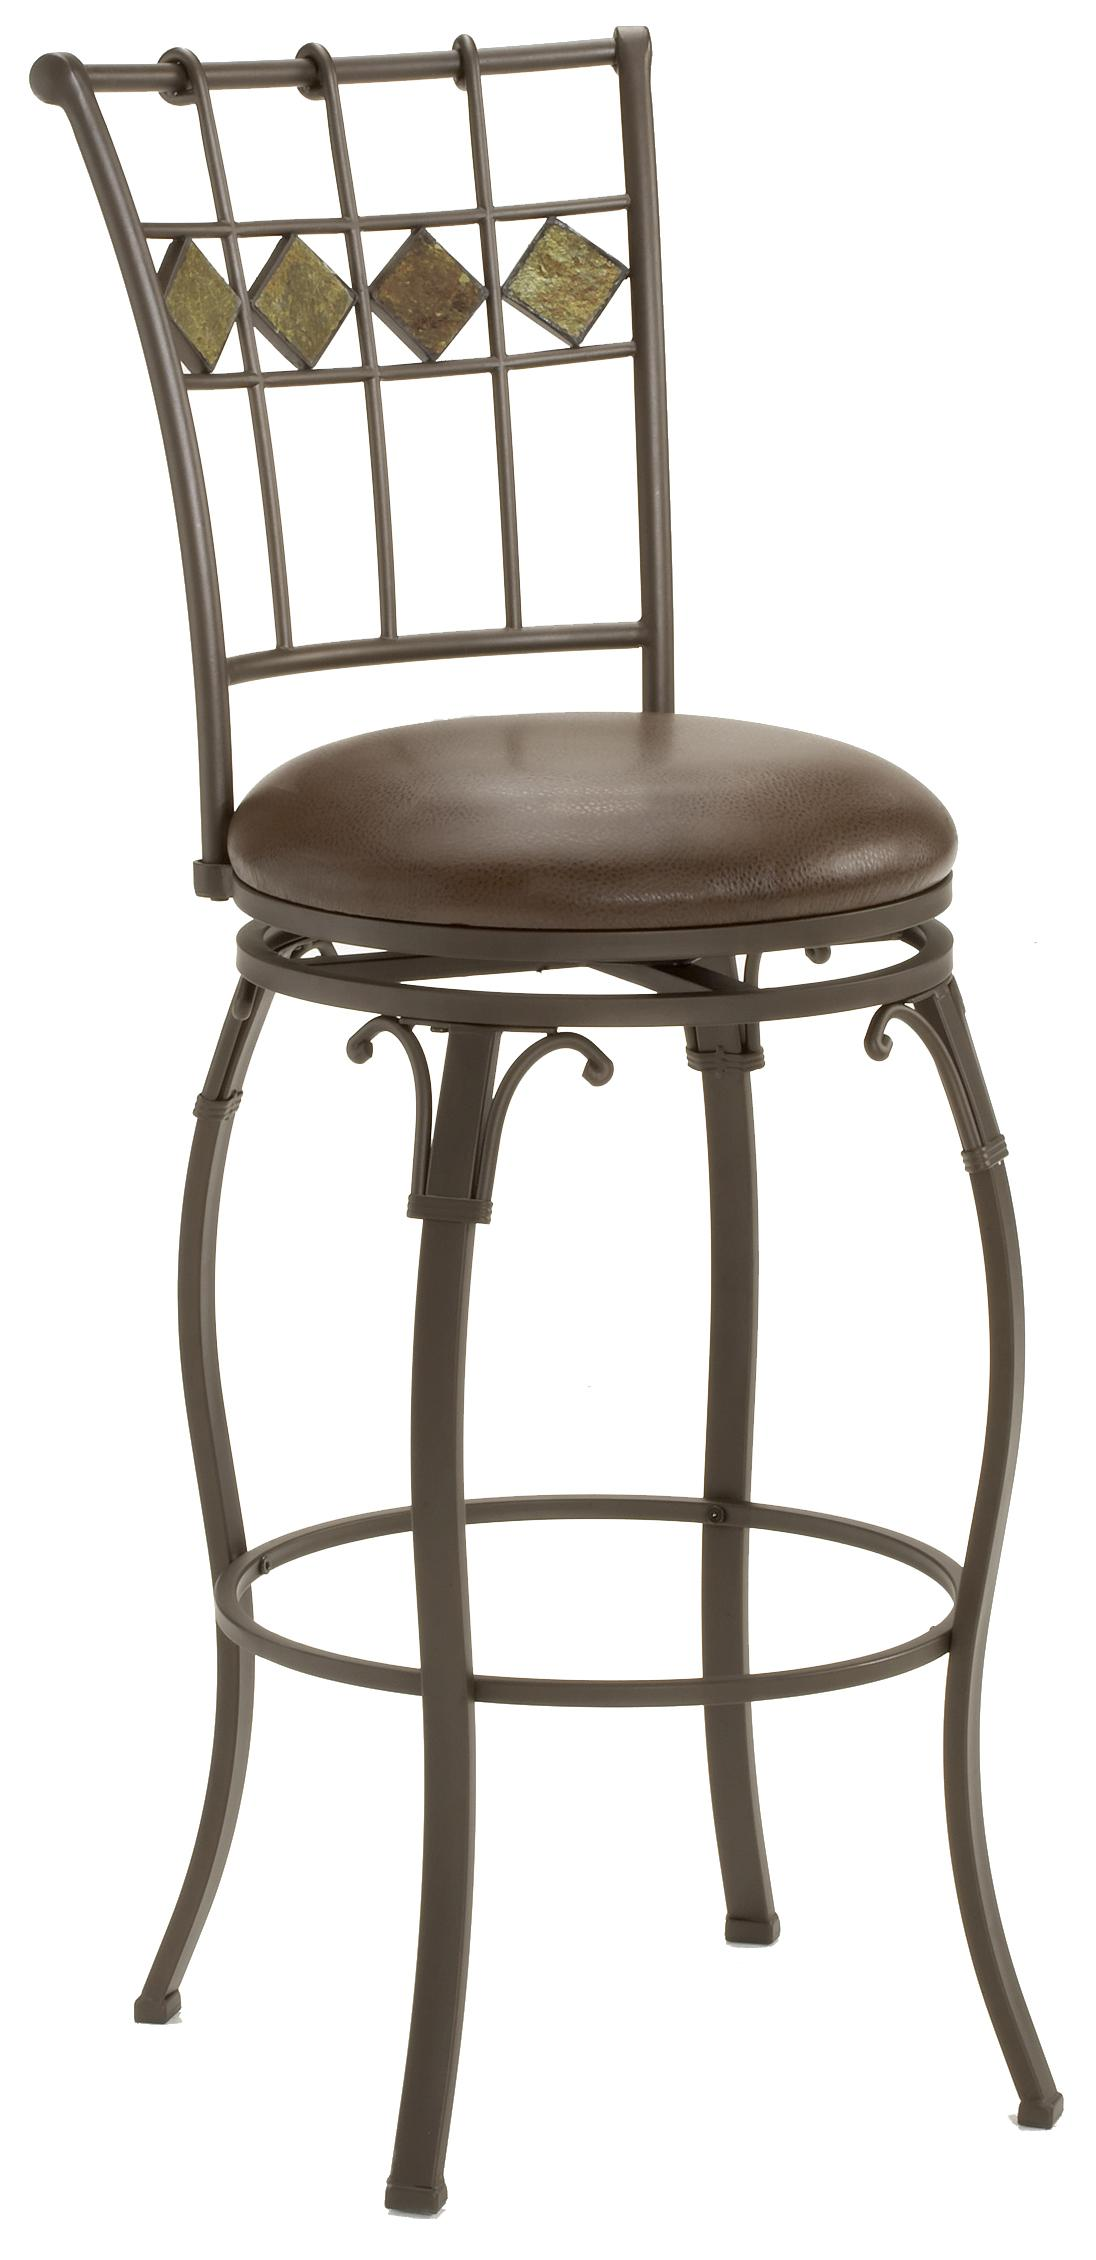 "Hillsdale Metal Stools 24"" Counter Height Lakeview Stool - Item Number: 4264-826"